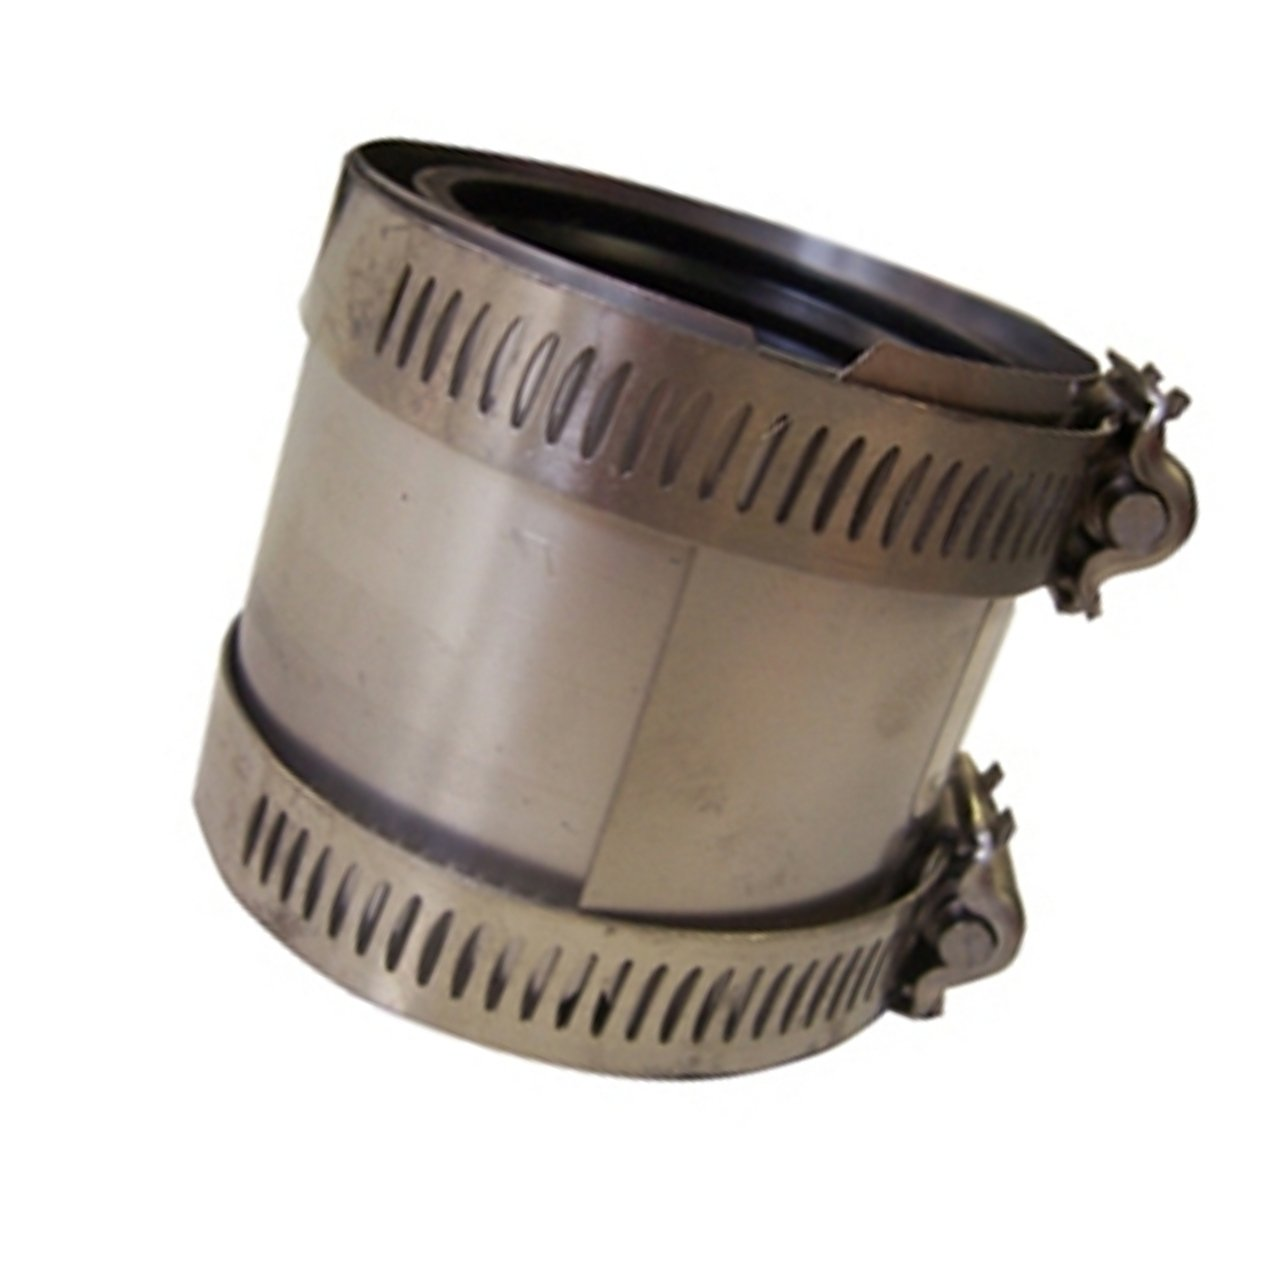 mission rubber ck 33 bandseal specialty coupling 3inch castiron to 3inch copper pipe fittings amazoncom